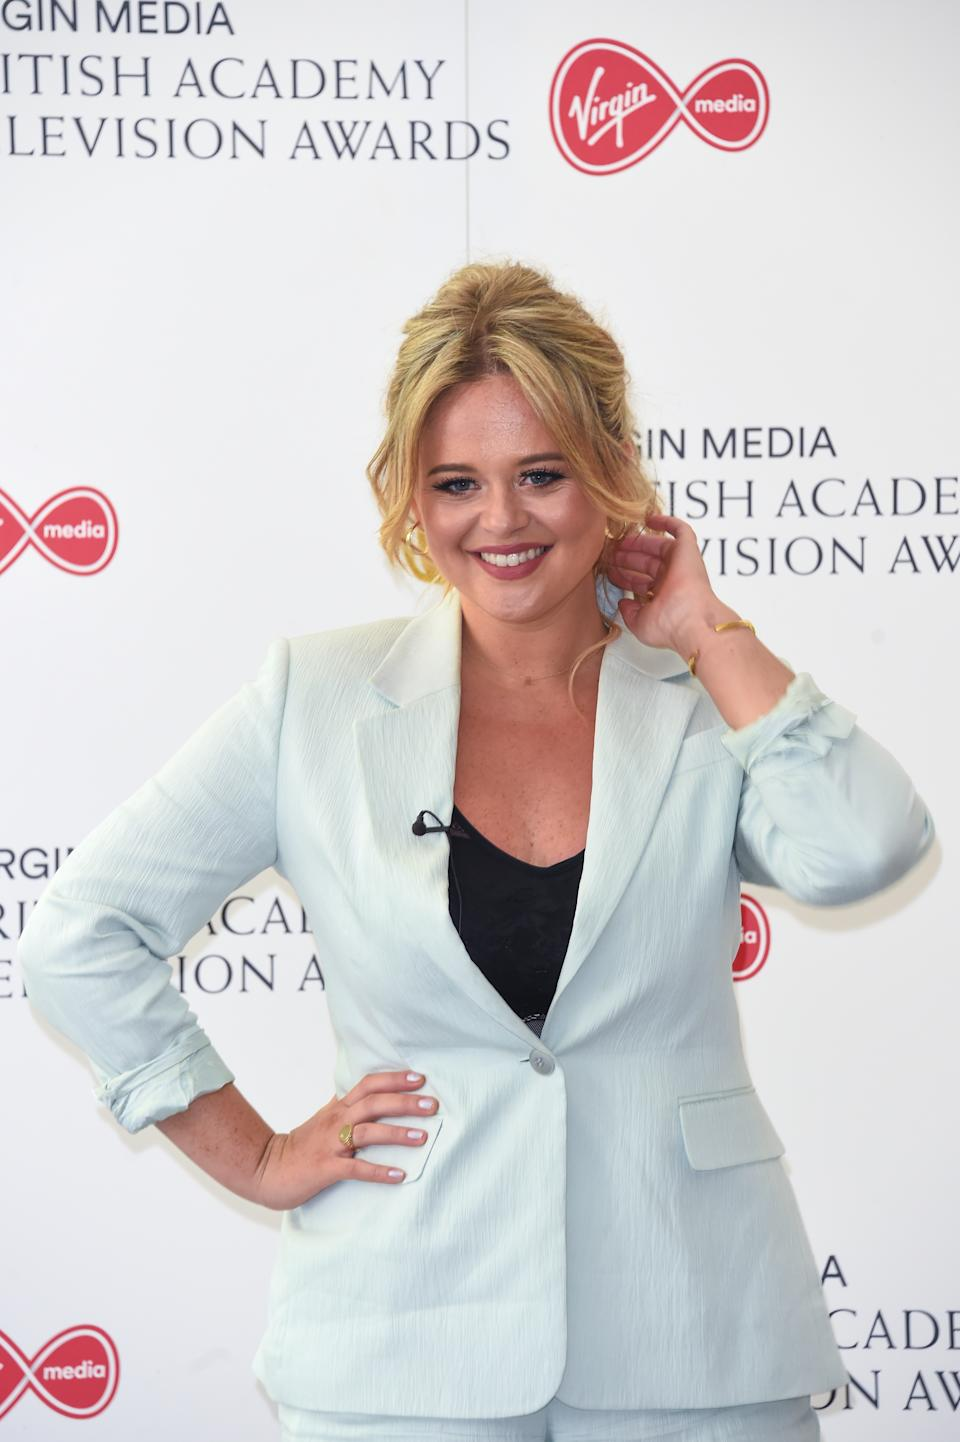 Emily Atack attends the Virgin Media British Academy Television Award 2020 at Television Centre on July 31, 2020 in London, England. (Photo by David M. Benett/Dave Benett/Getty Images)